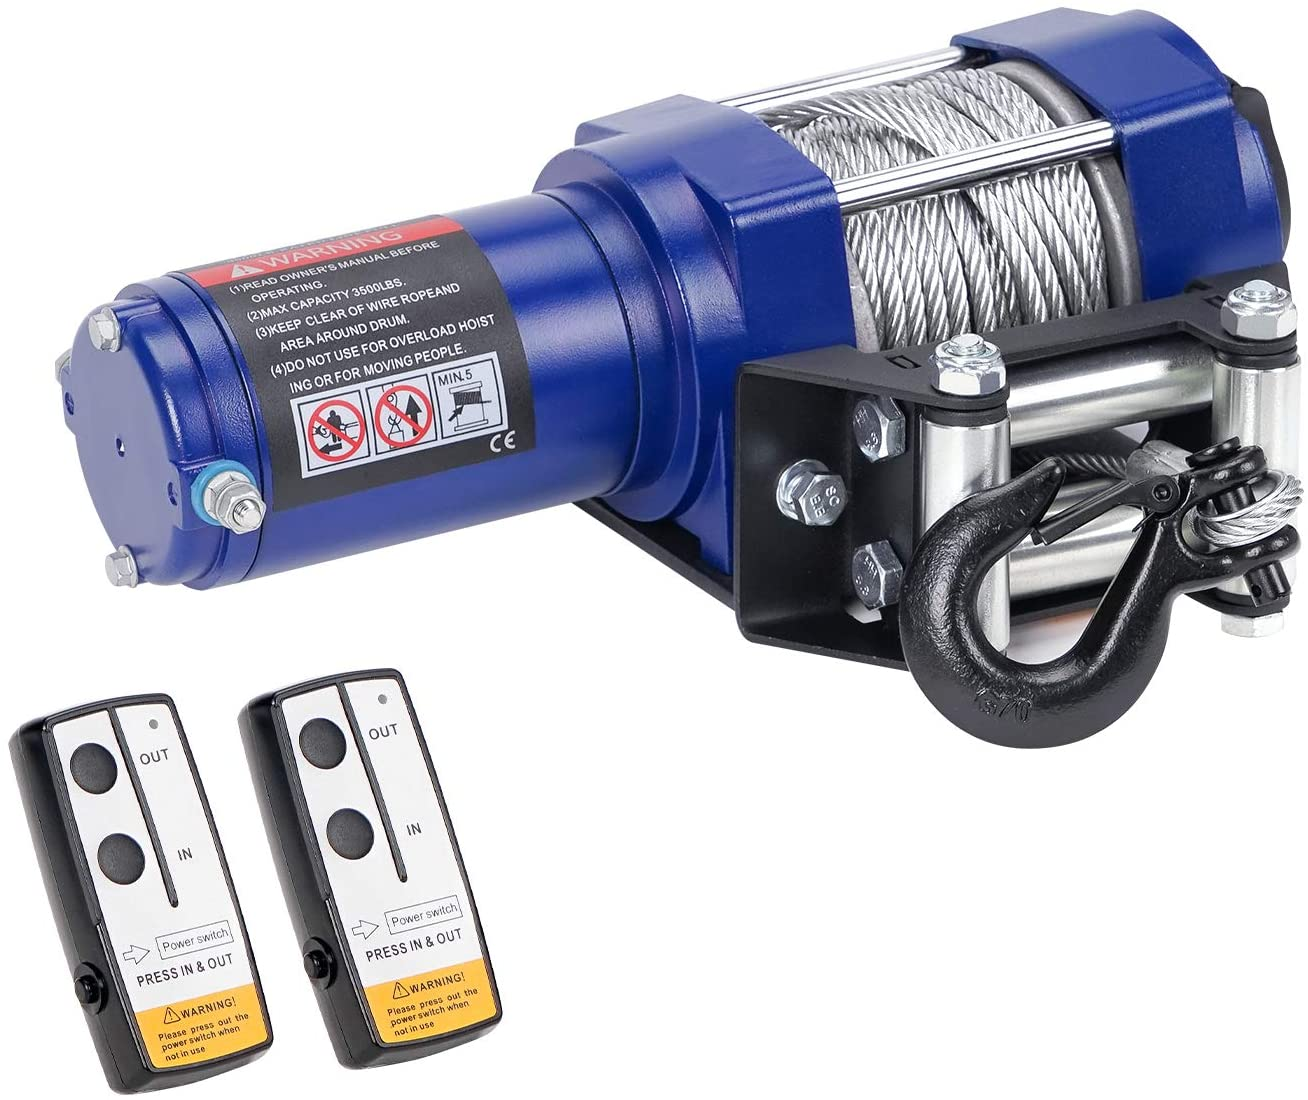 leofit Electric Winch 12V Steel Cable 3500 lbs. Capacity Wireless Remote Control